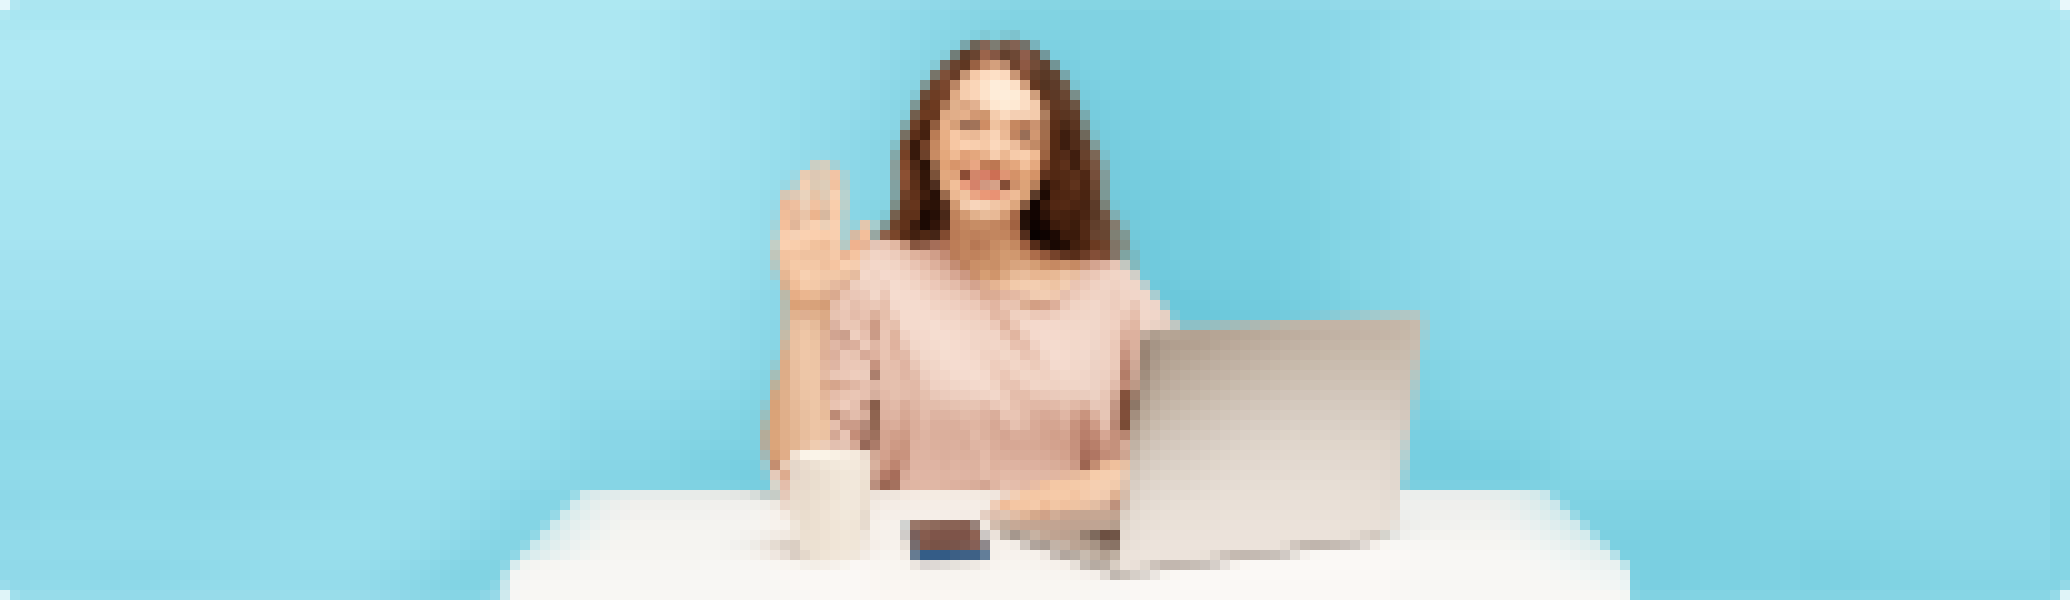 A coding teacher waves at her student in a one-on-one online coding class